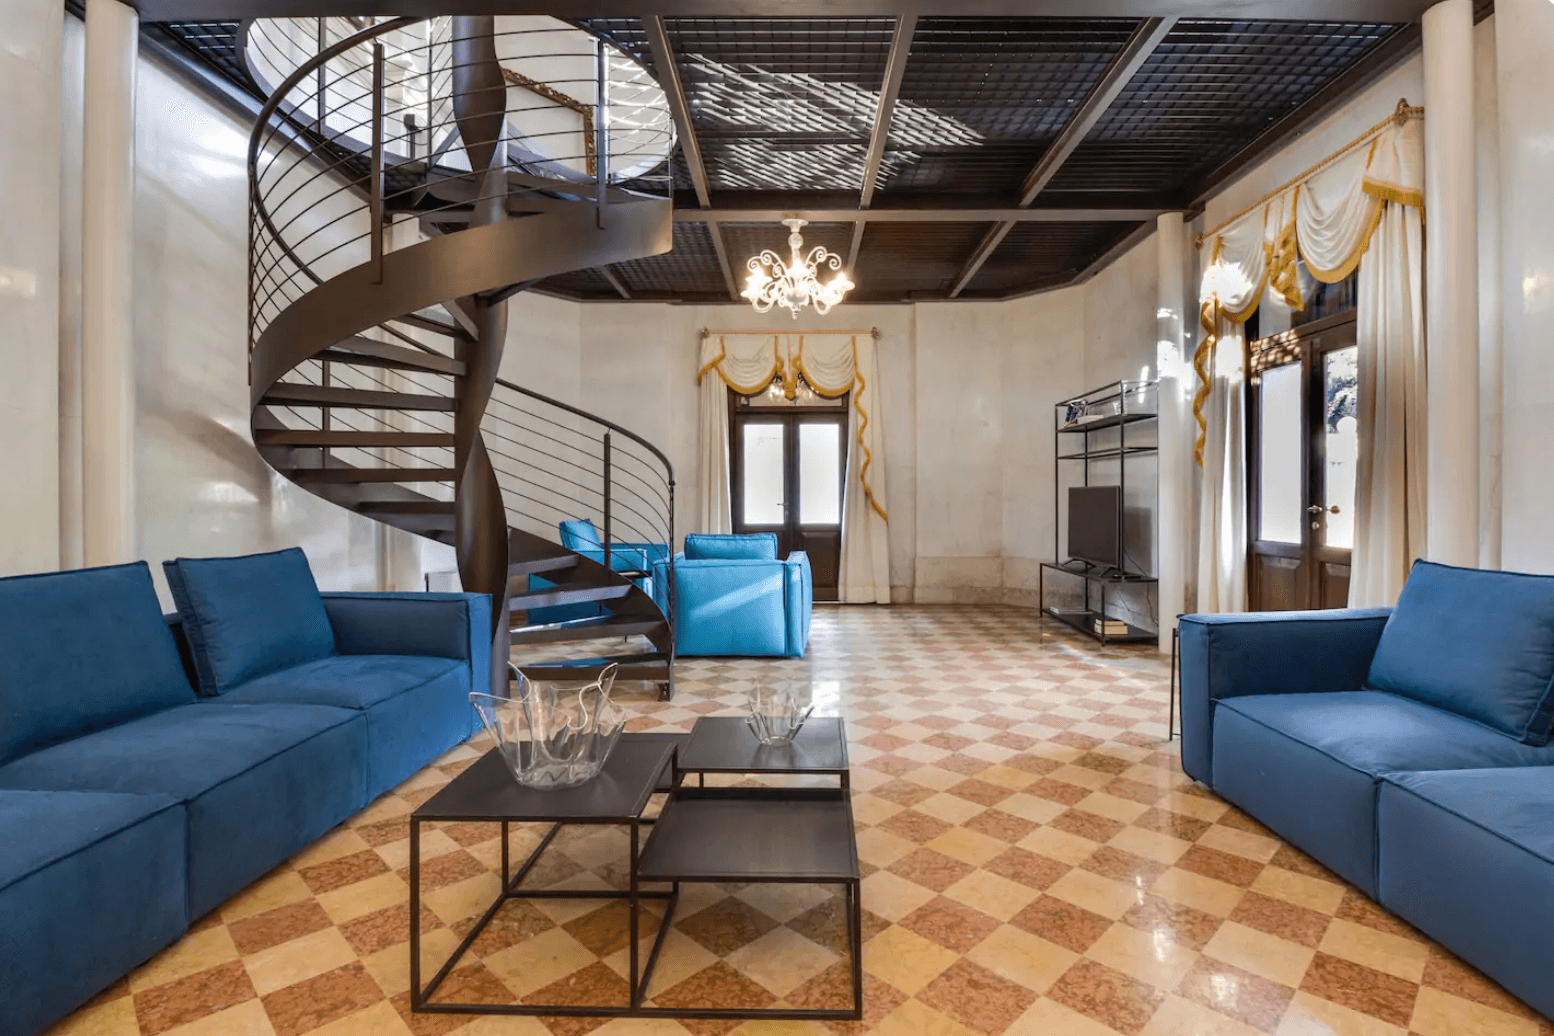 a living room of an airbnb in Venice, Italy